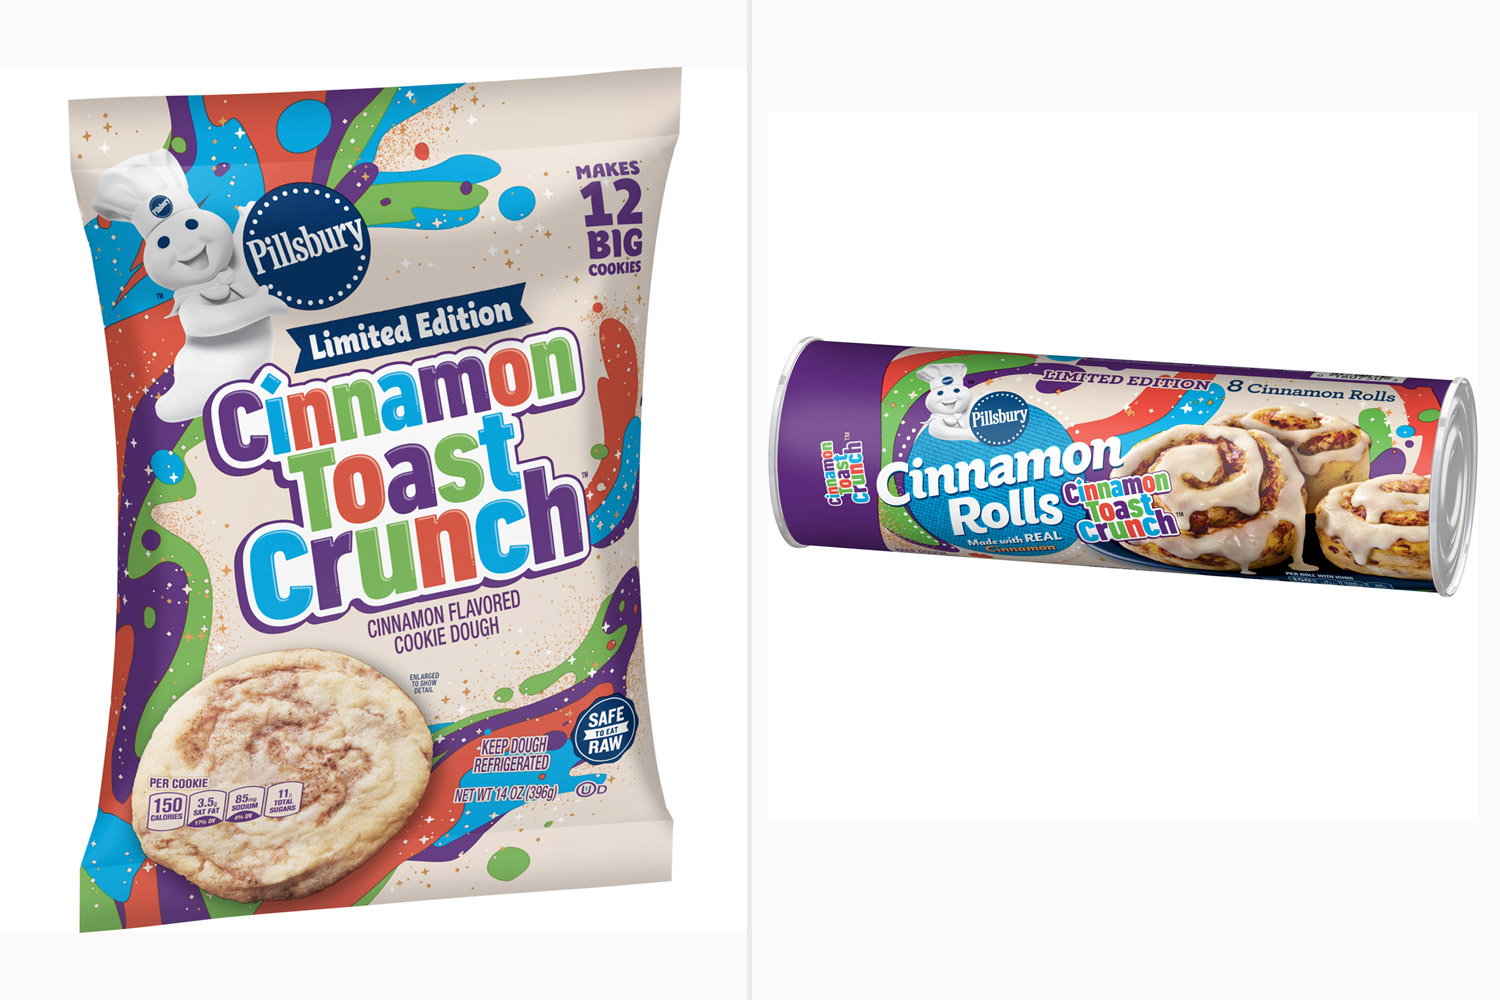 Cinnamon Toast Crunch Flavored Cookie Dough and Cinnamon Rolls